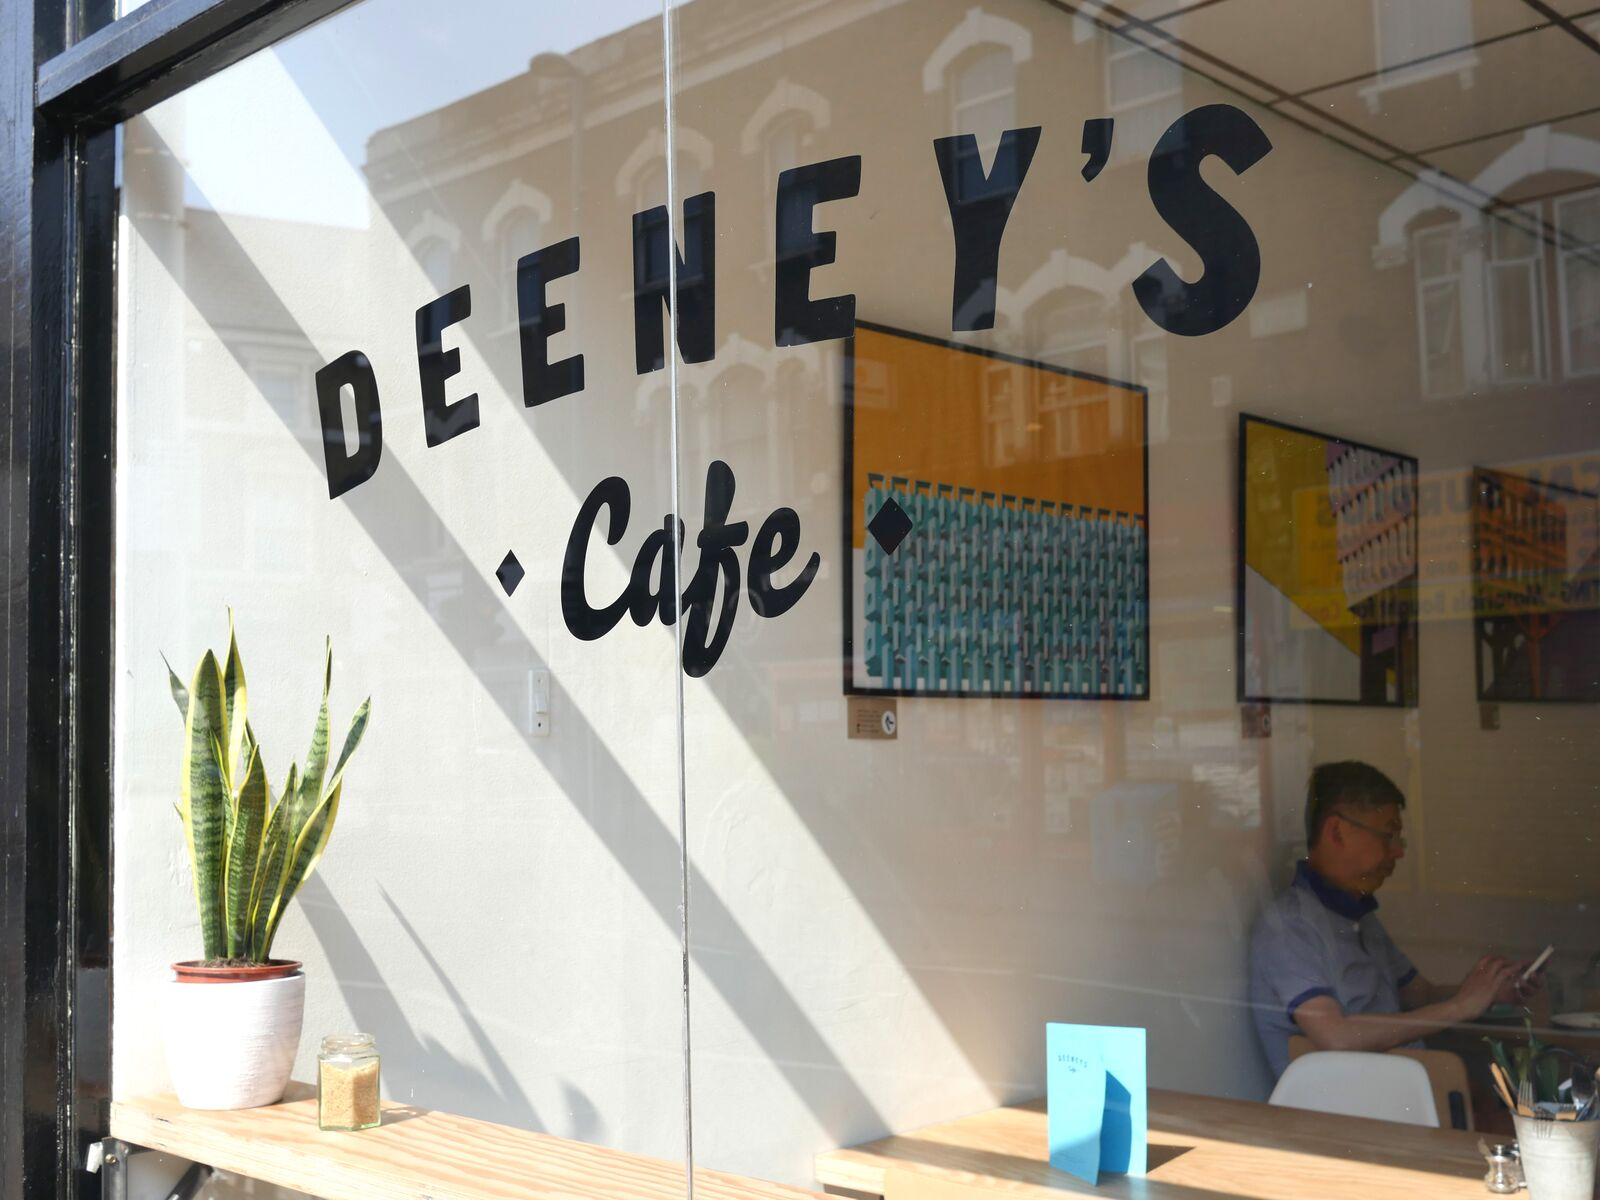 Deeney's Cafe